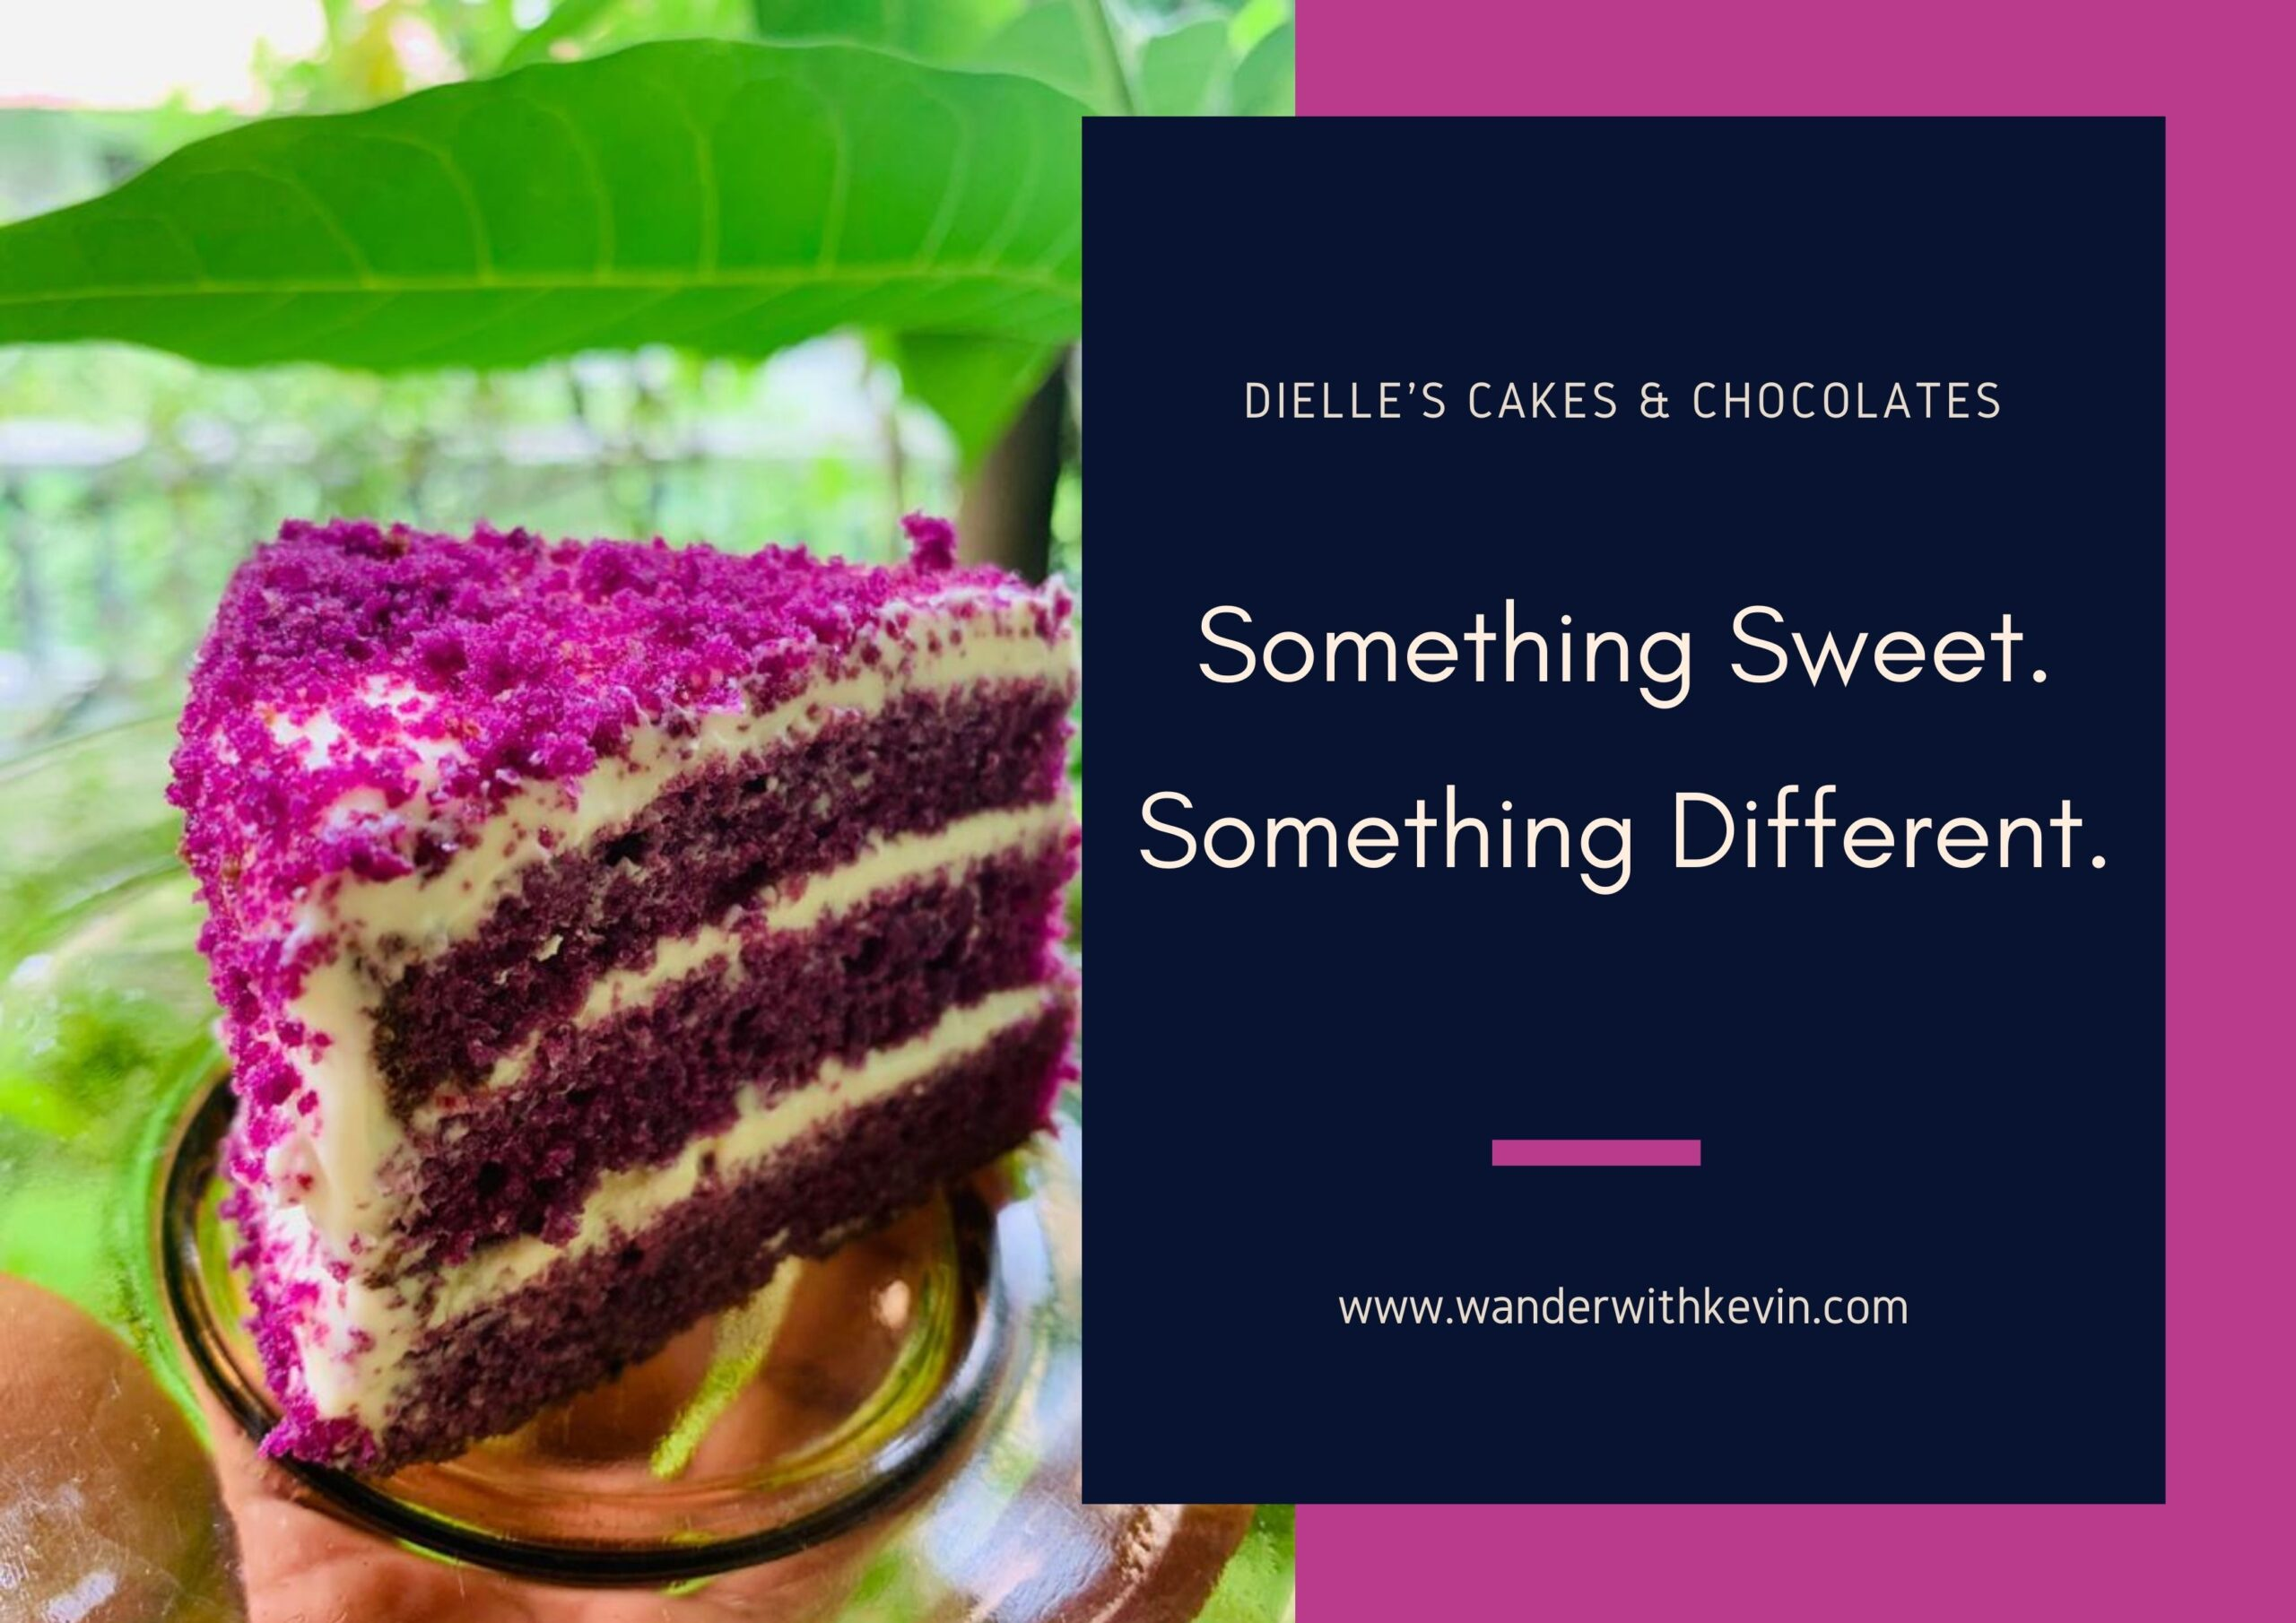 Something Sweet. Something Different: Dielle's Cakes & Chocolates